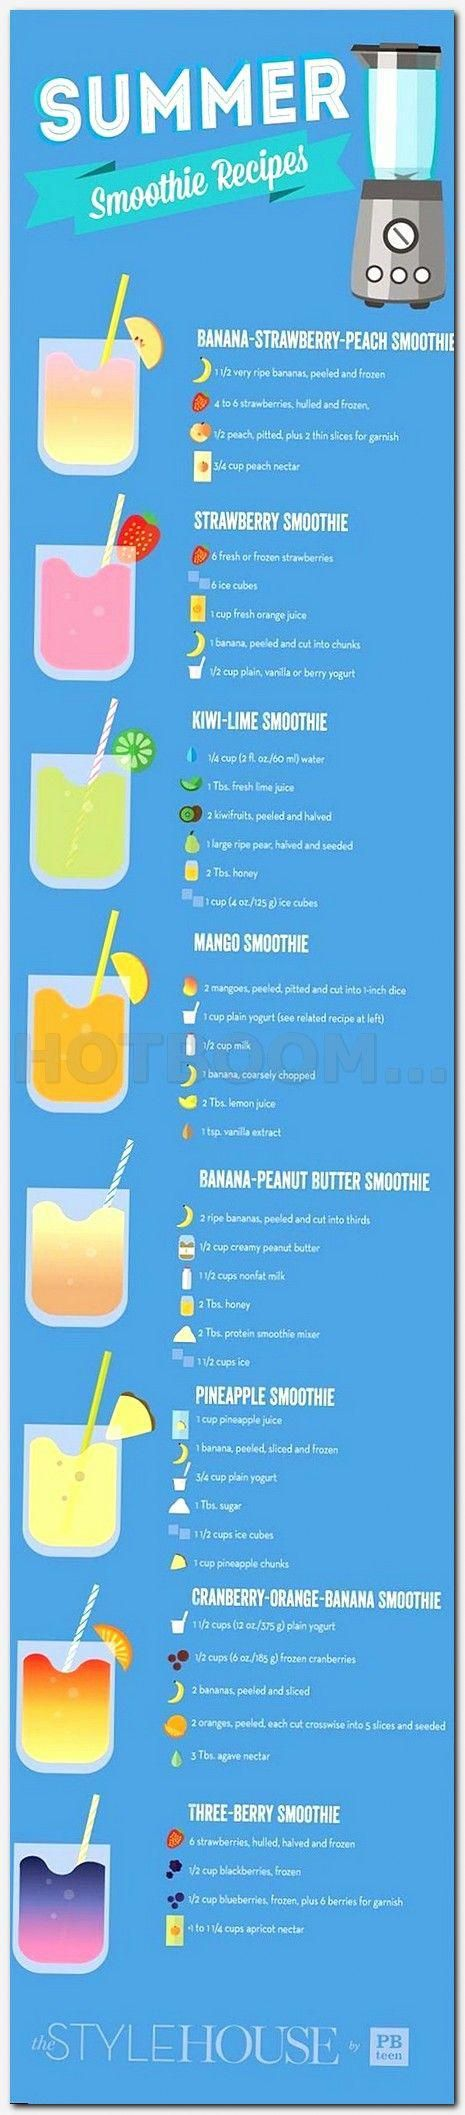 meal plan creator, strict diet plan for weight loss, coke, benefits of grapefrui...